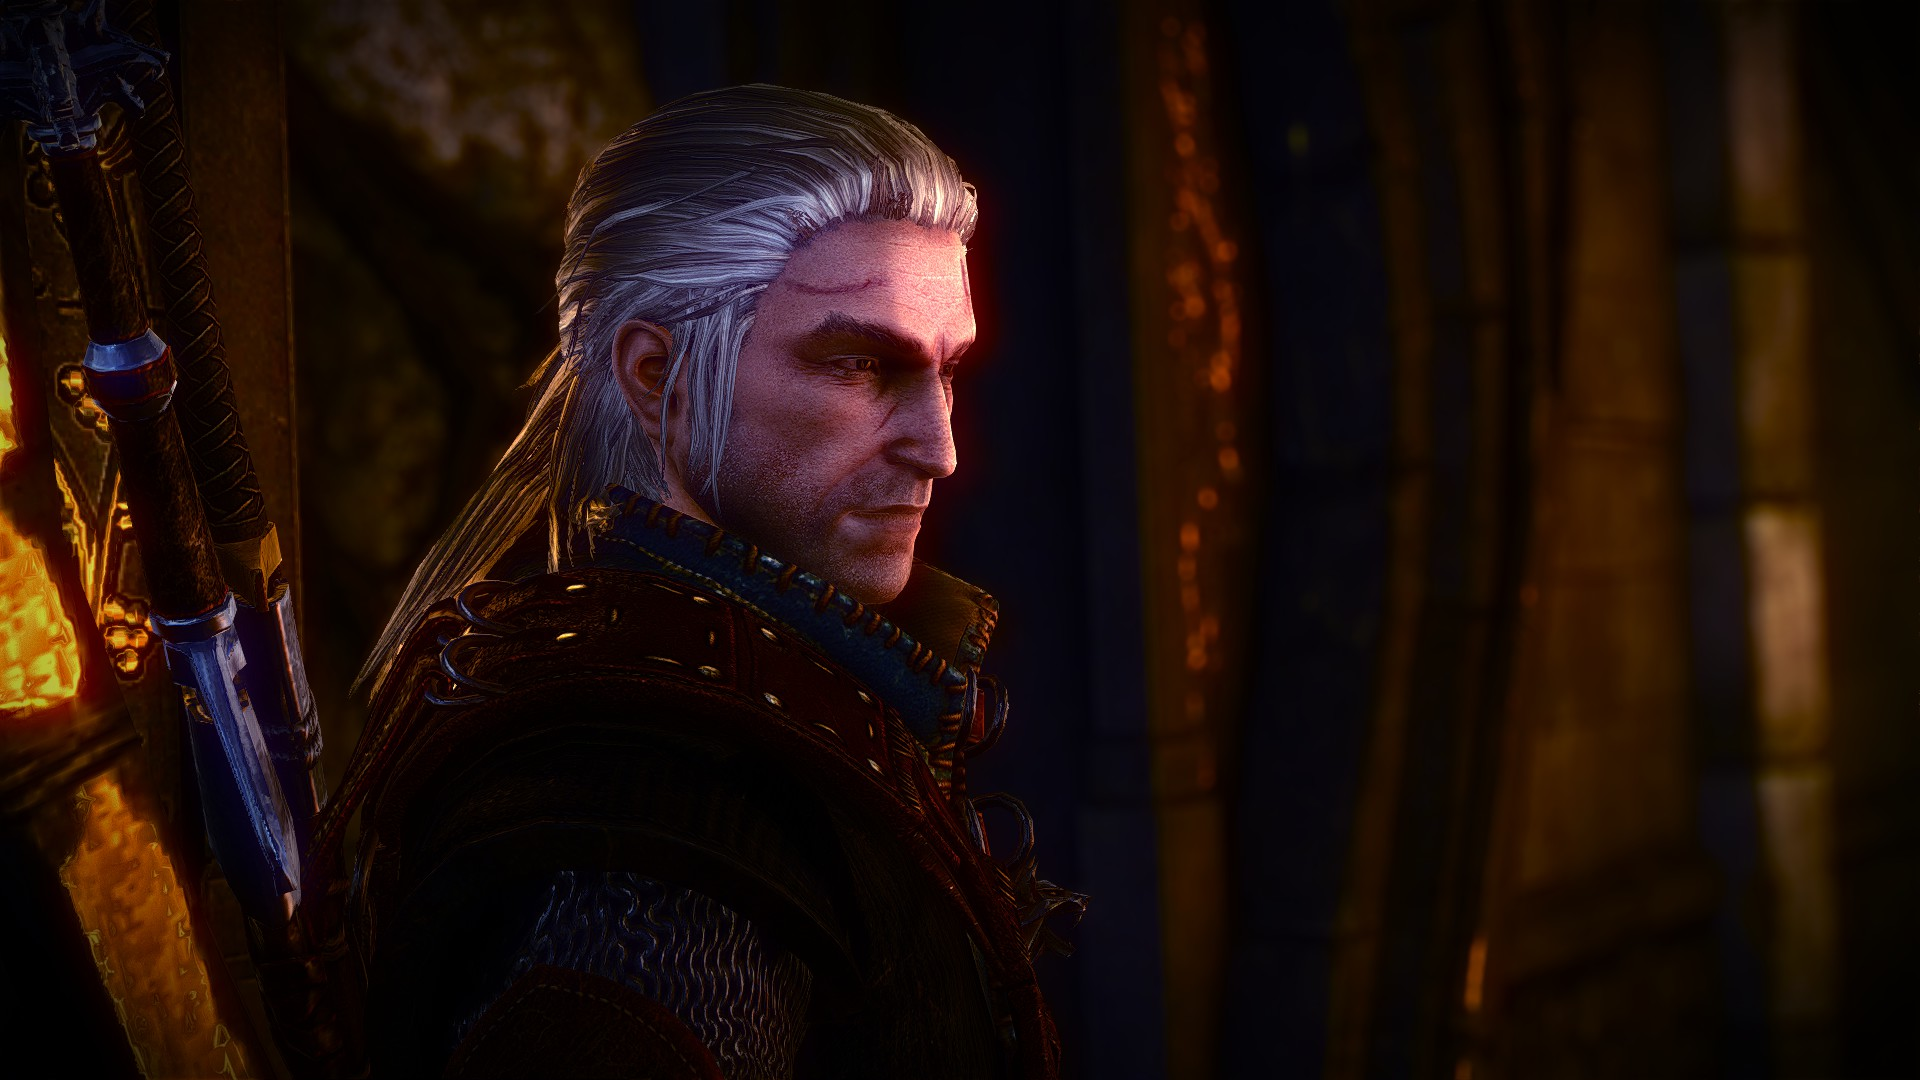 20190807190839_1.jpg - Witcher 2: Assassins of Kings, the Трисс